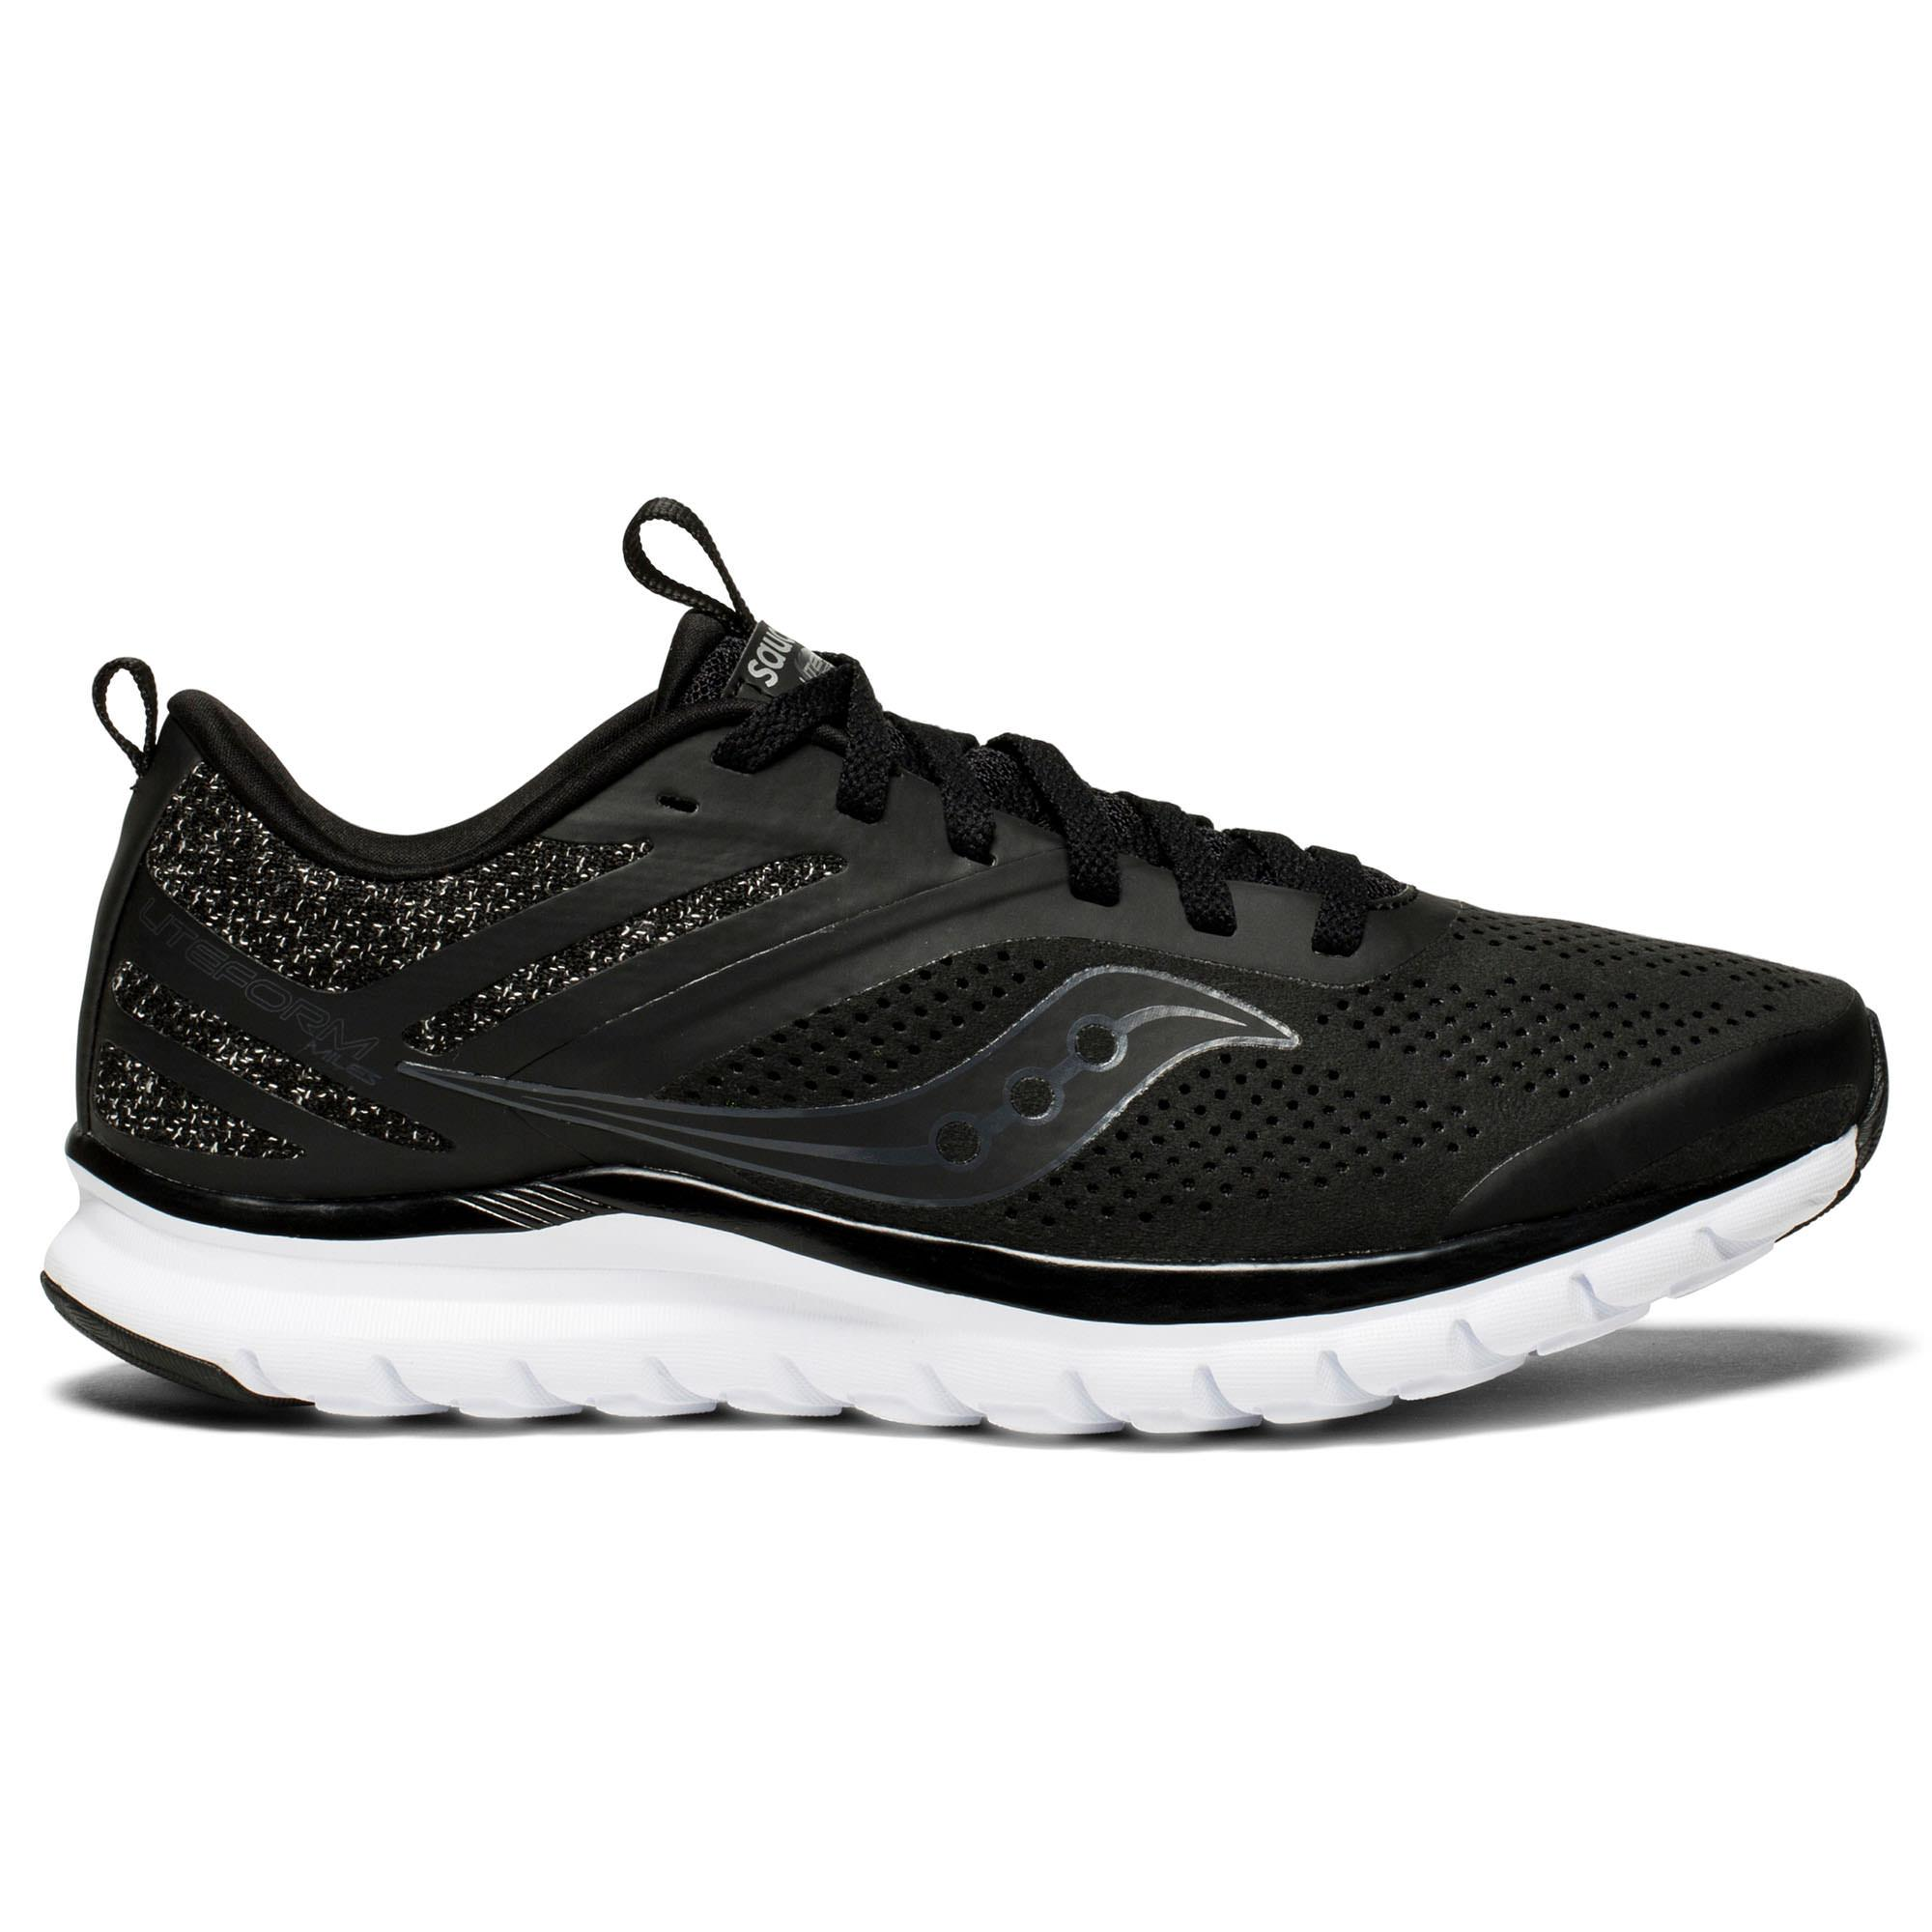 48a0681a73 Saucony Philippines -Saucony Running Shoes for Women for sale ...